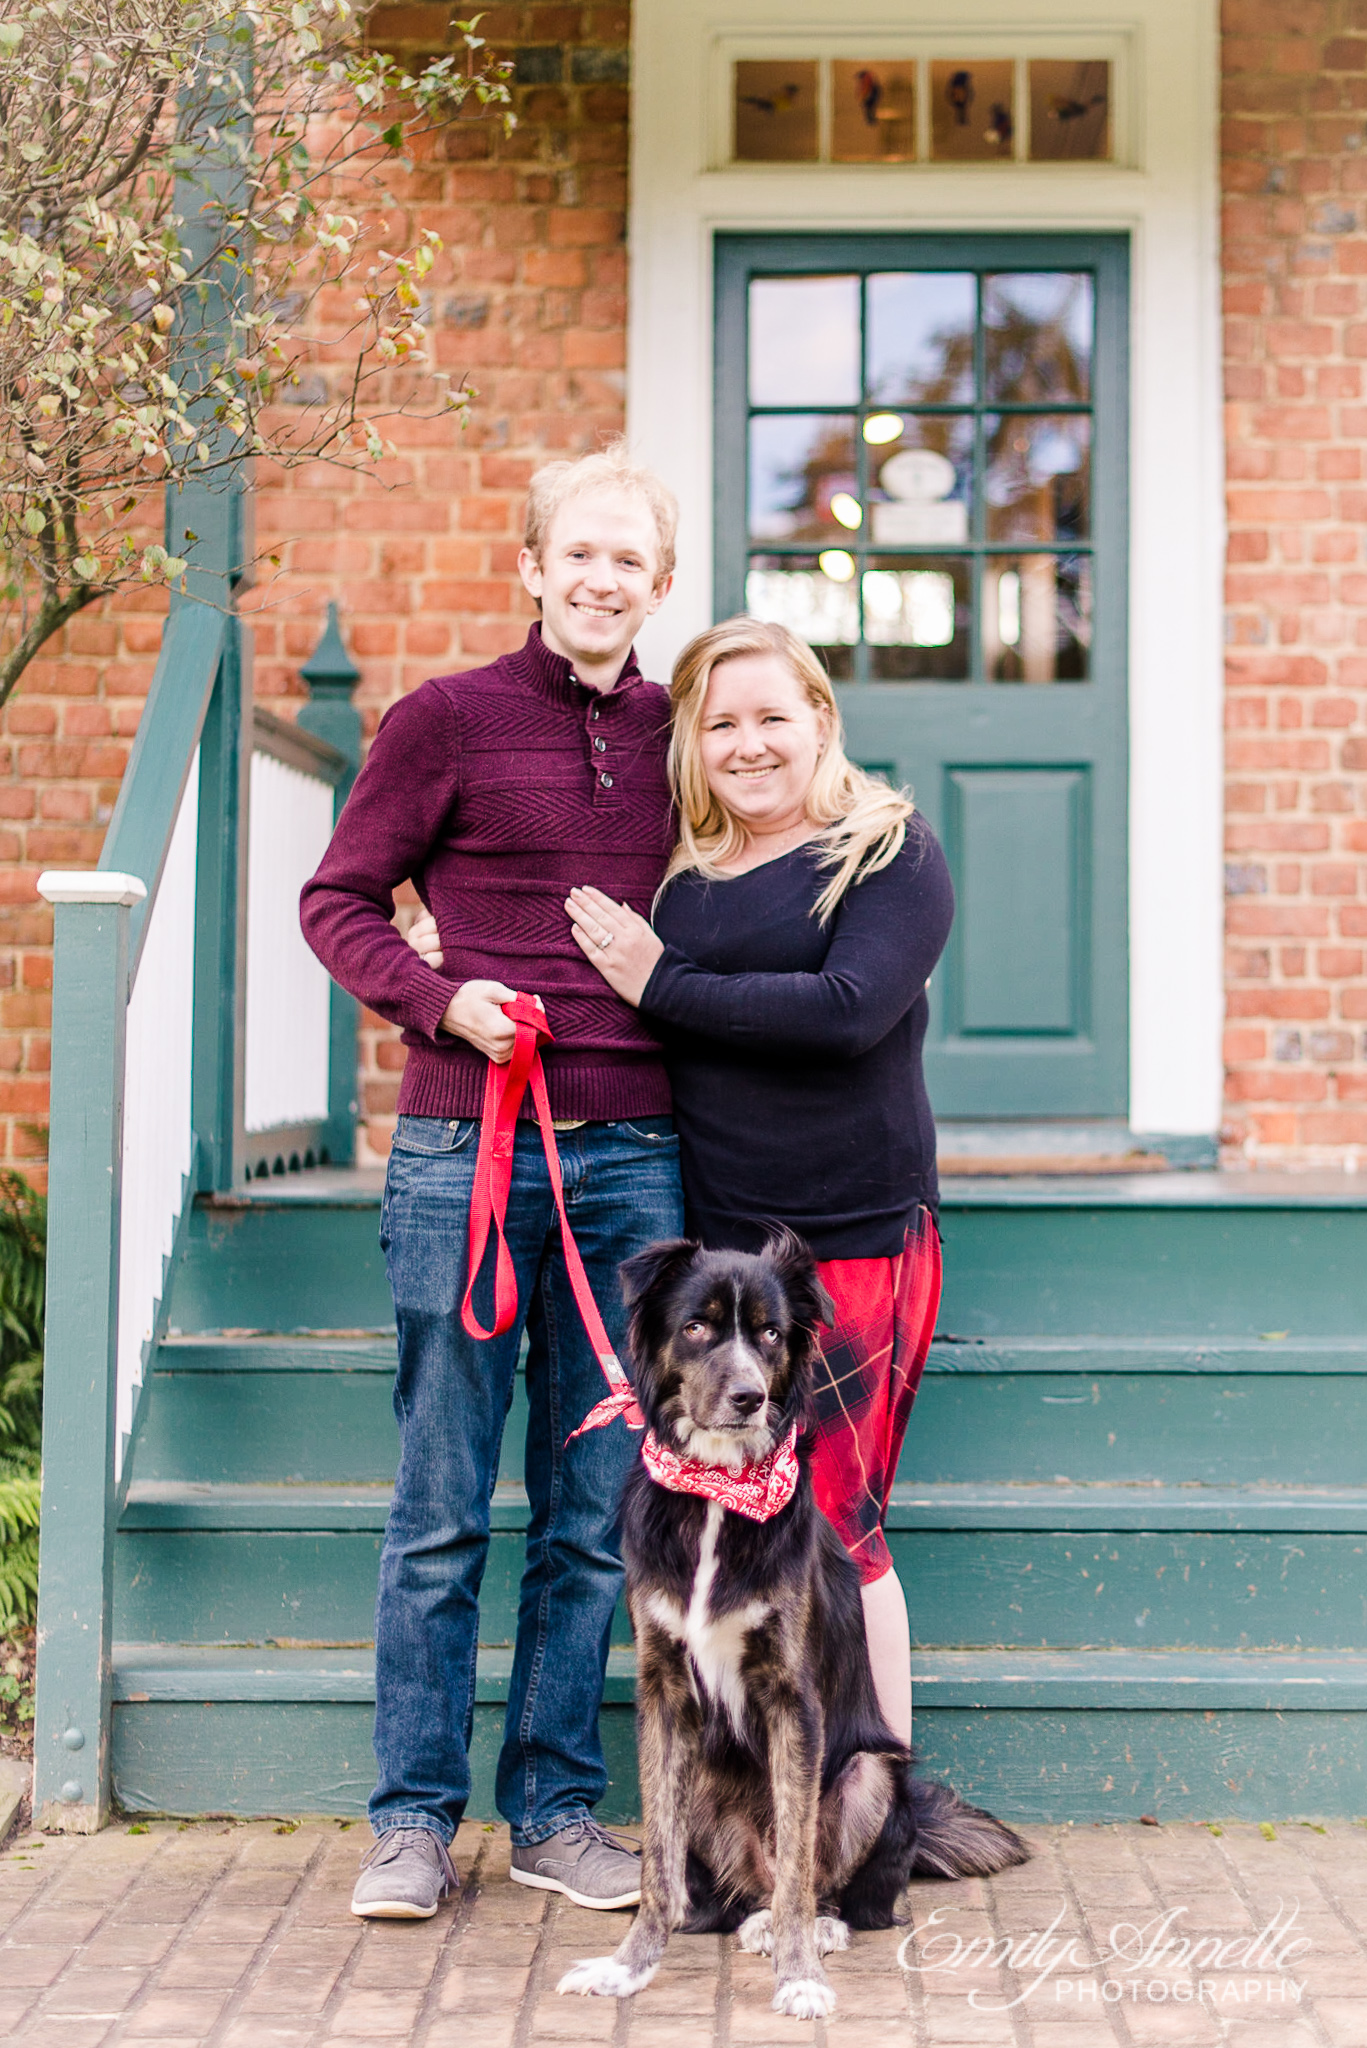 A couple pose with their dog in front of the historic house in the fall at Green Spring Gardens Park in Alexandria, Virginia